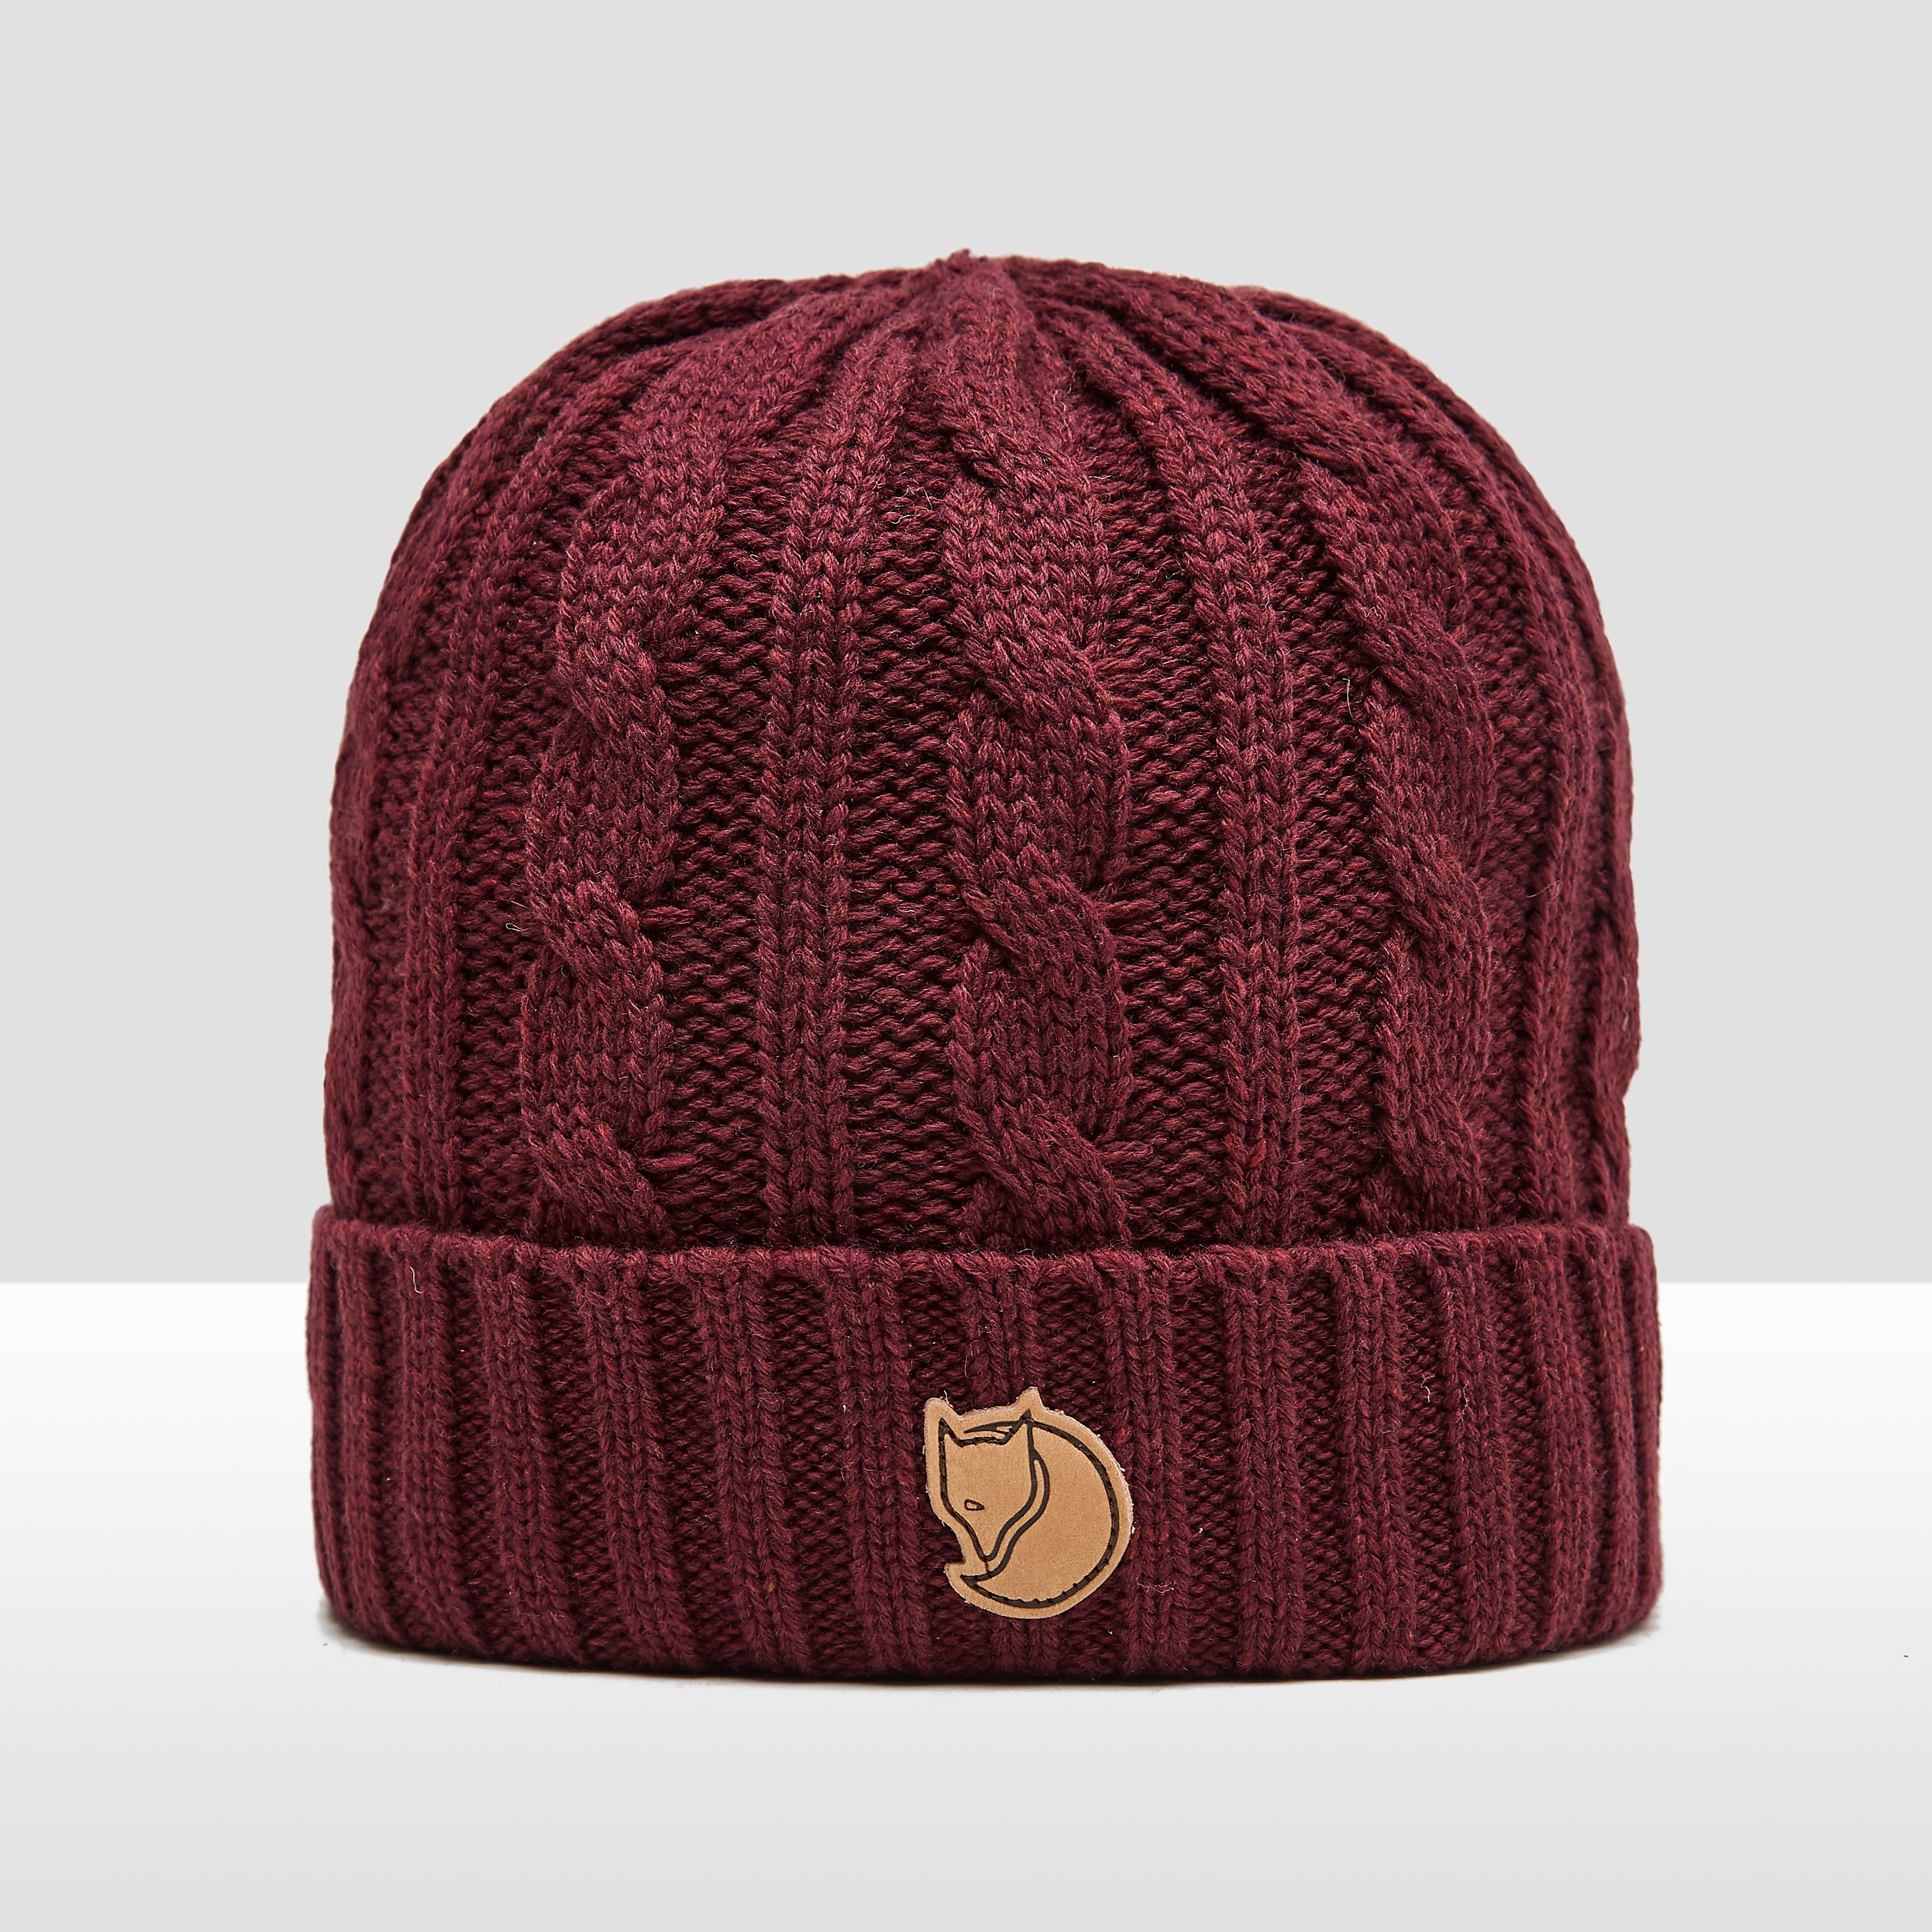 FJALLRAVEN BRAIDED KNIT MUTS ROOD